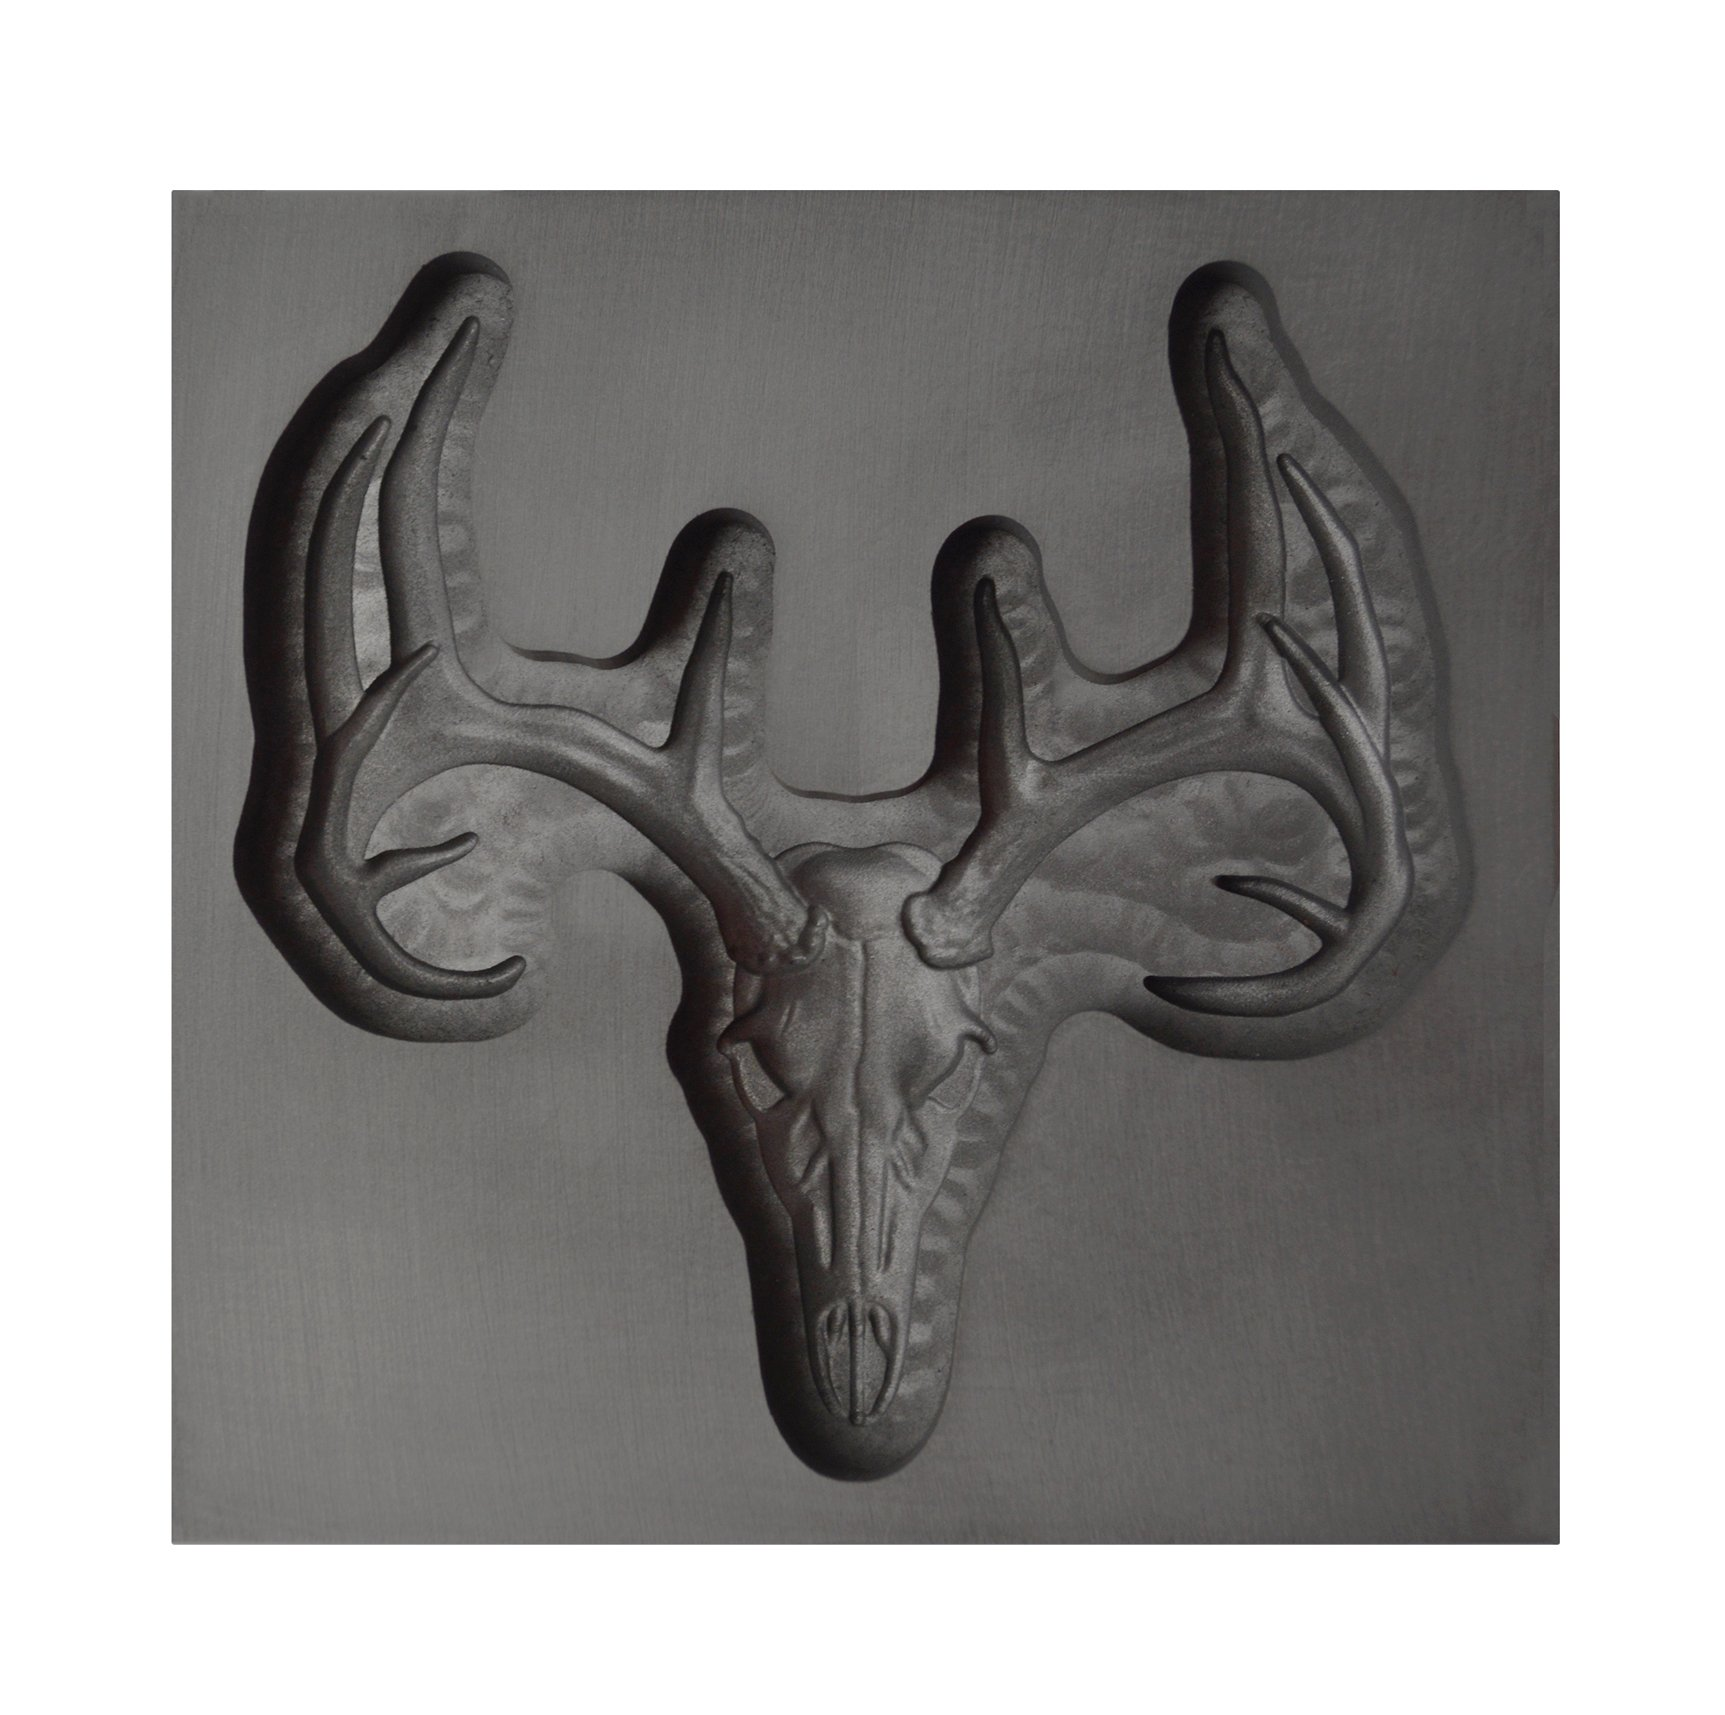 Large - Deer Skull 3D Graphite Ingot Mold for Precious Metal Casting Gold Silver Copper Melting by PMC Supplies LLC